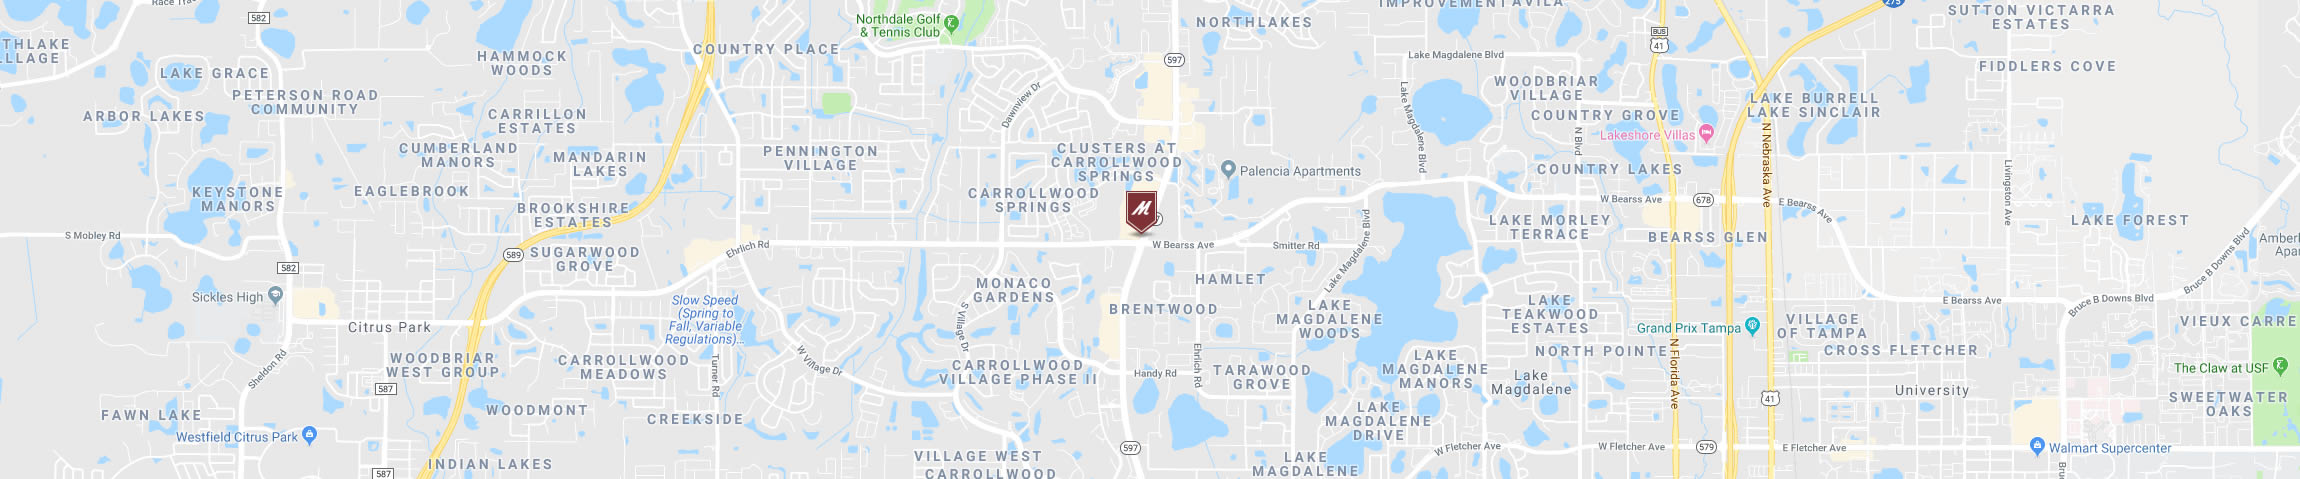 Google Map Image for the Romano's Macaroni Grill Carrollwood Location